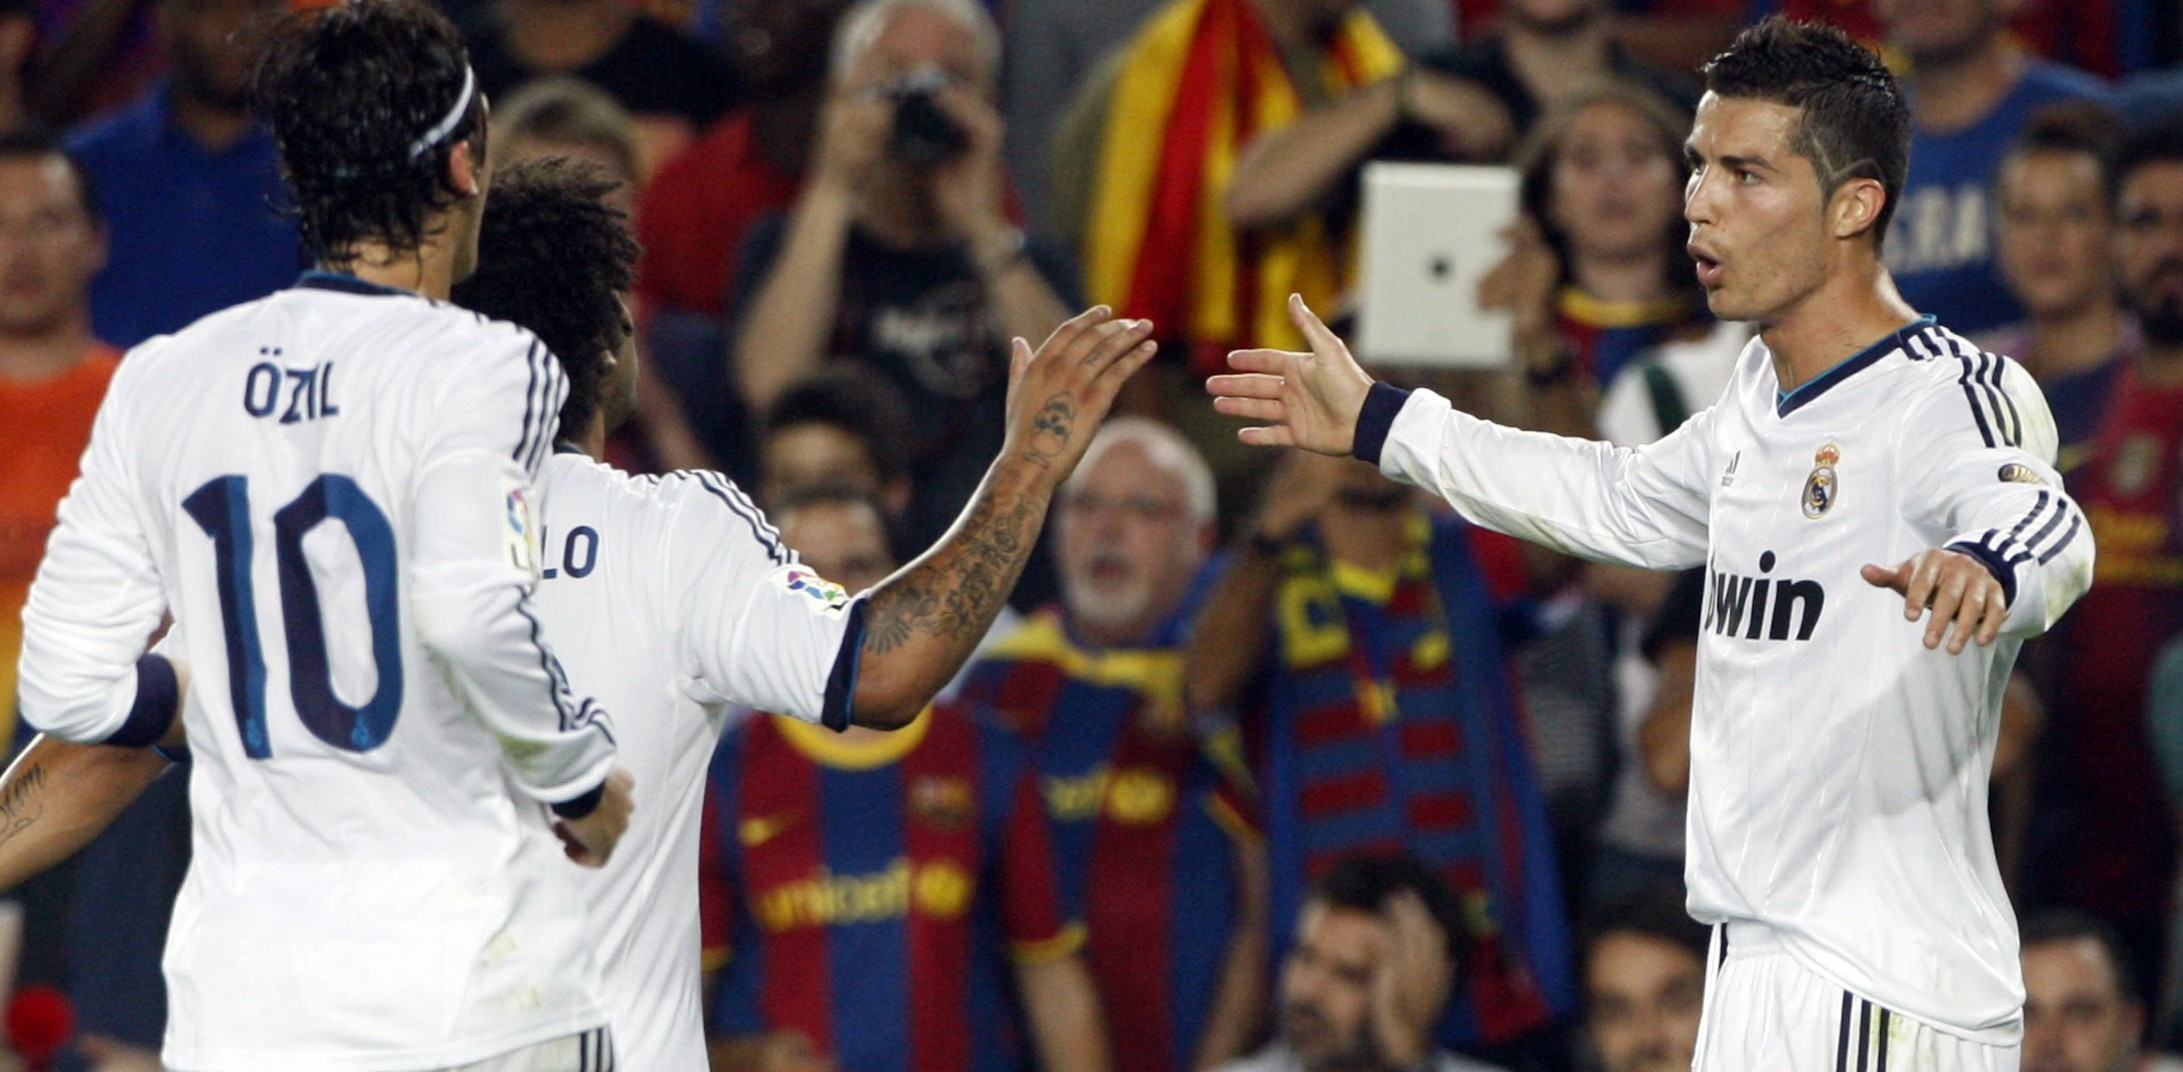 Real Madrid's Ronaldo celebrates with Ozil and Marcelo after scoring his second goal against Barcelona during their Spanish first division soccer match at Nou Camp stadium in Barcelona